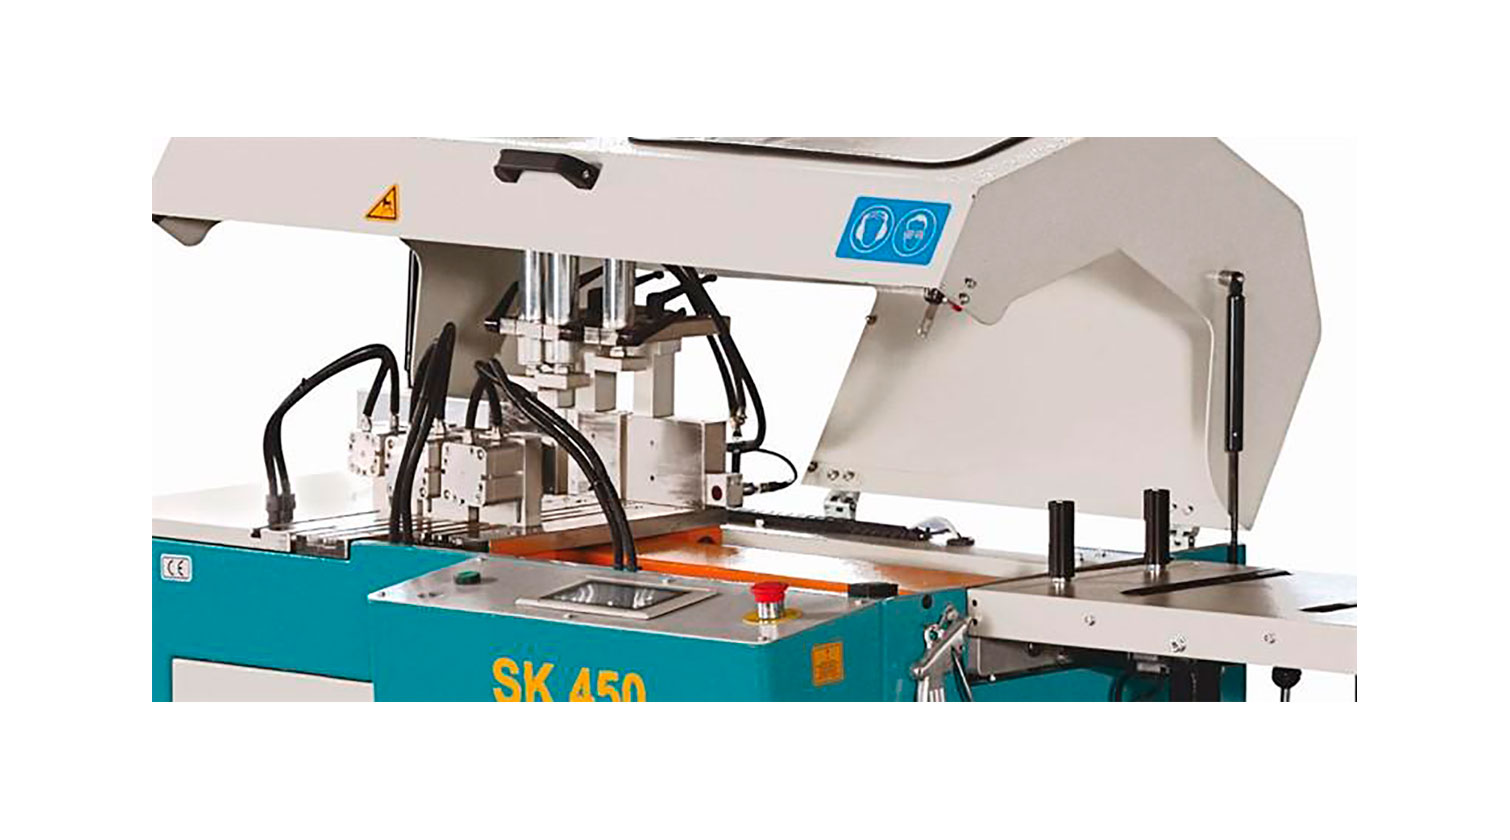 INT aluminum automatic saw Yilmaz SK 450 safety hood